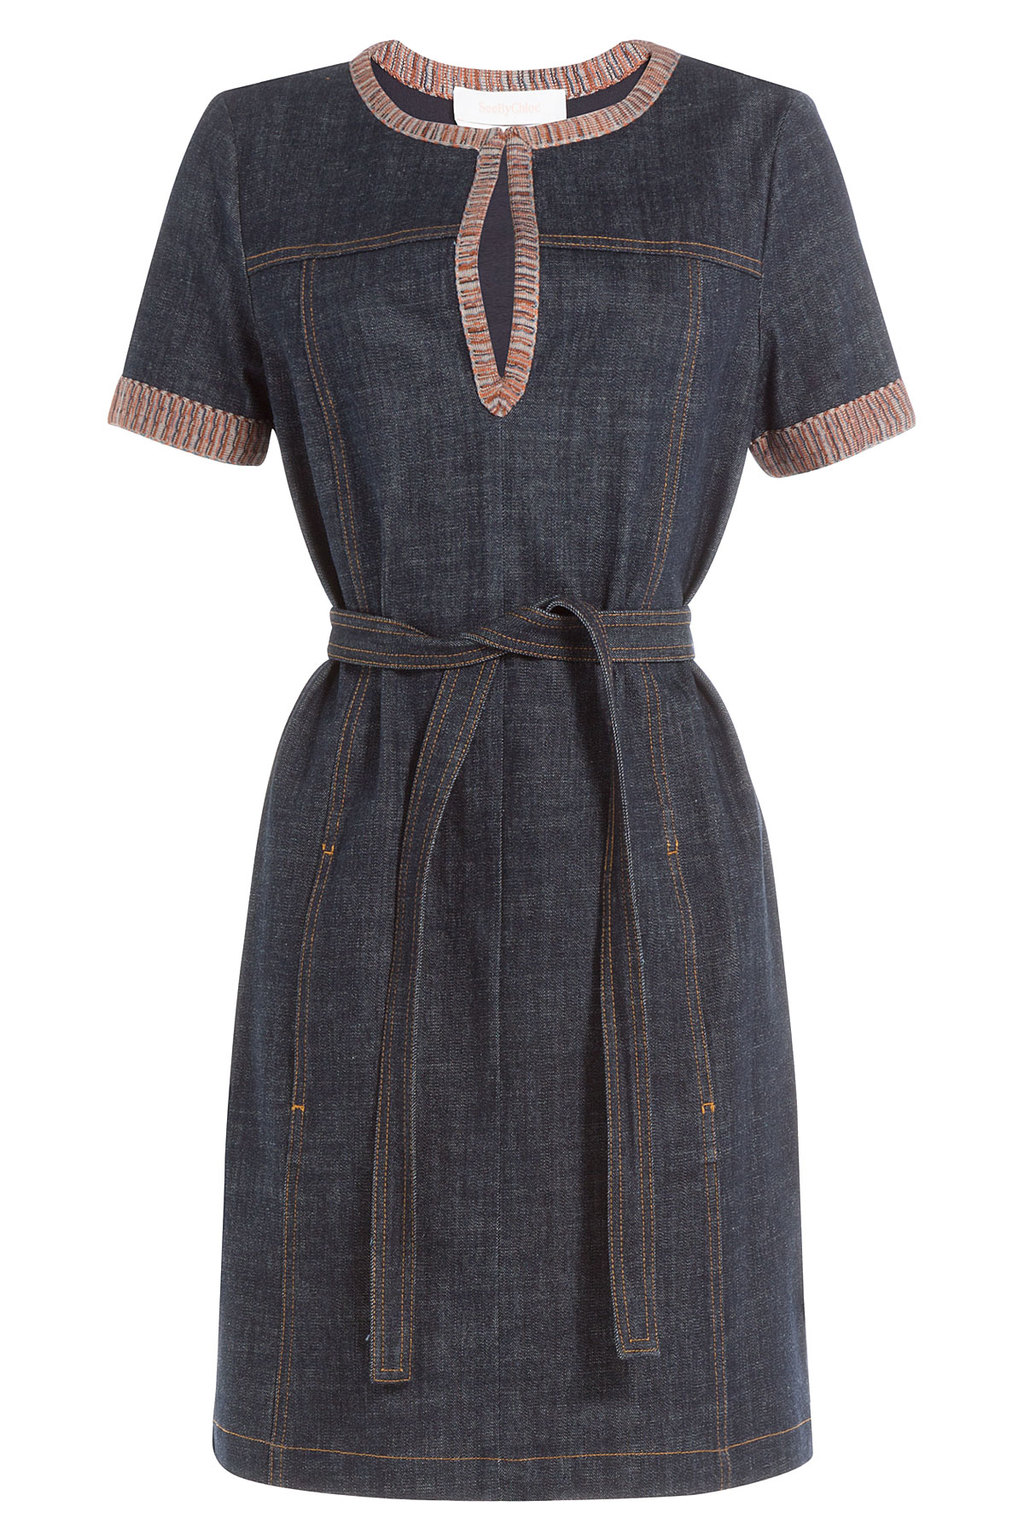 Denim Dress With Knit Trim Blue - style: tunic; length: mid thigh; pattern: striped; secondary colour: burgundy; predominant colour: navy; occasions: casual; fit: body skimming; neckline: peep hole neckline; fibres: cotton - 100%; sleeve length: short sleeve; sleeve style: standard; texture group: denim; pattern type: fabric; pattern size: light/subtle; season: s/s 2016